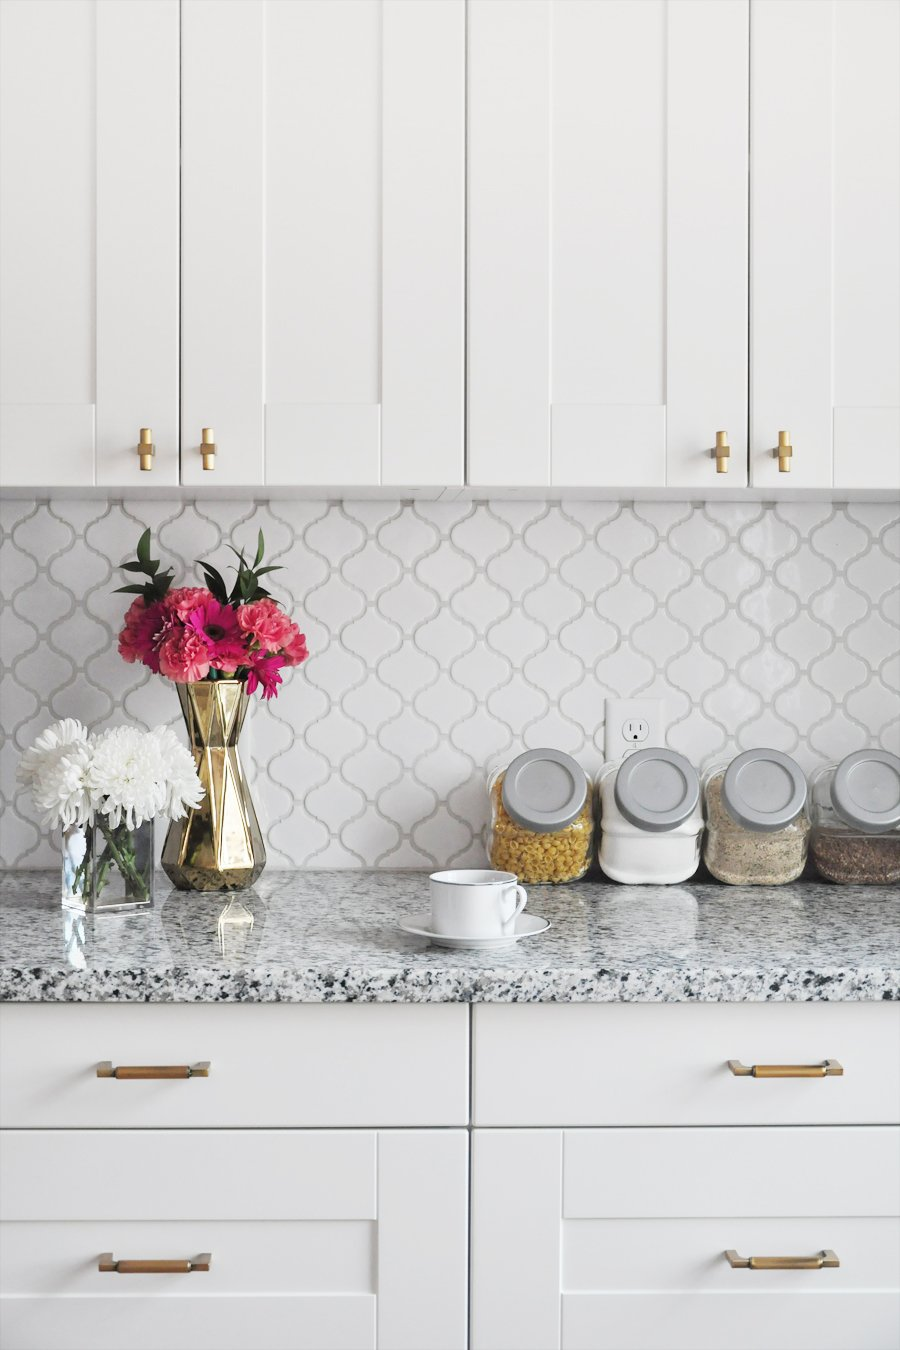 how to tile a kitchen backsplash diy tutorial sponsored